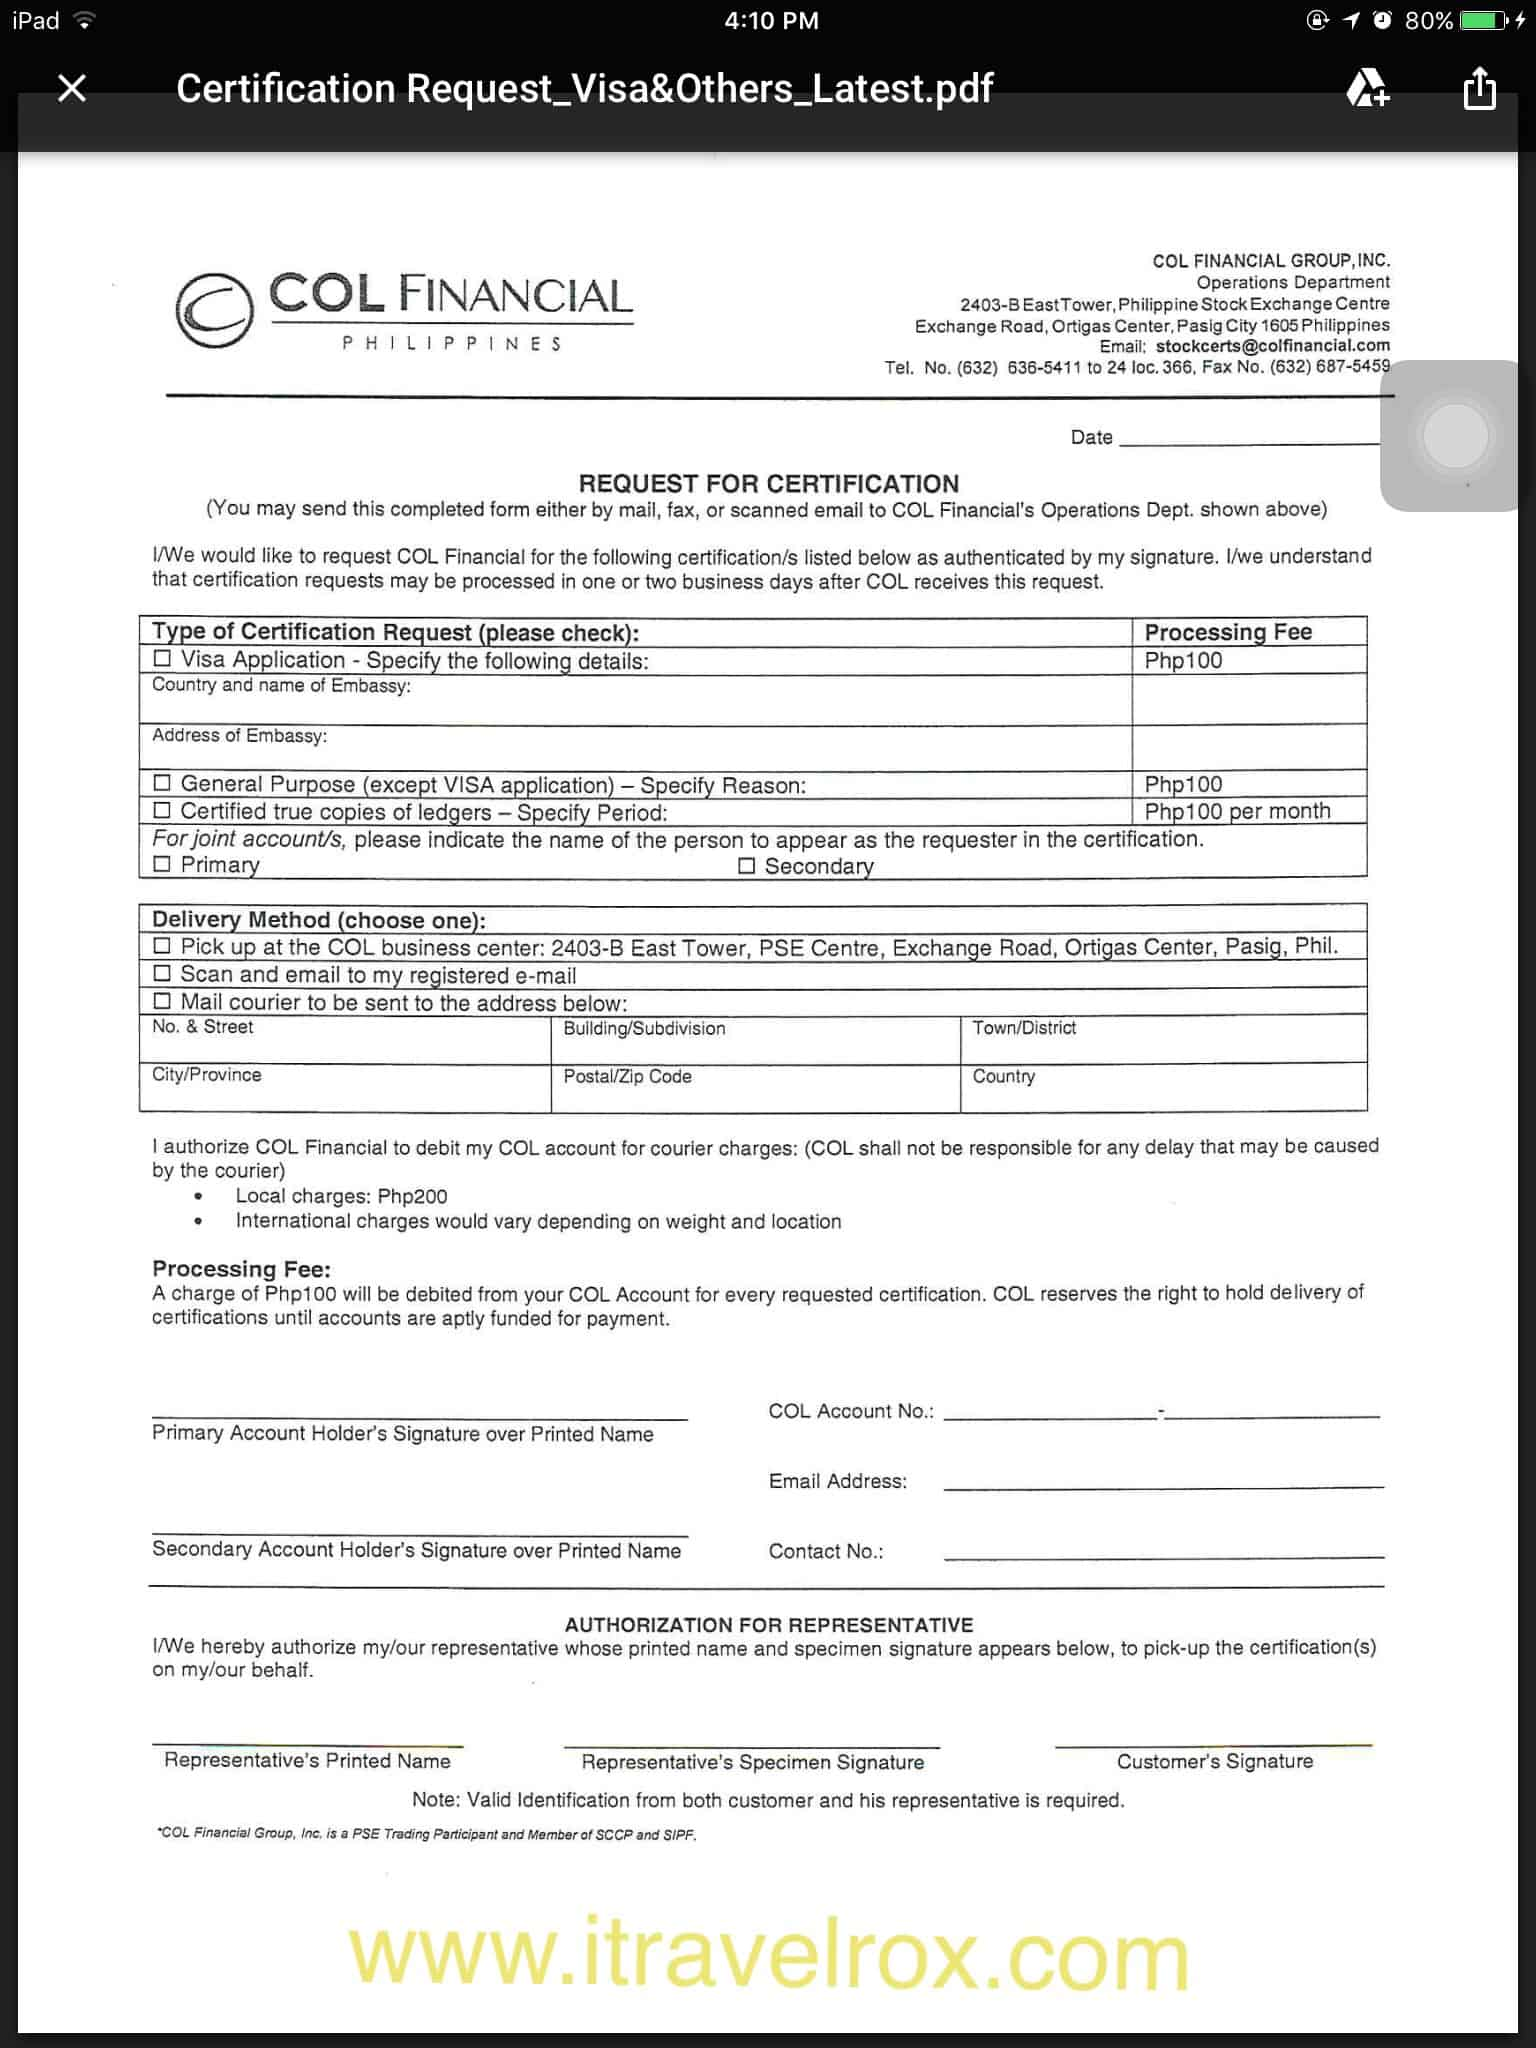 How to request stock certificate from col financial philippines how to request stock certificate from col financial philippines for visa application itravelrox yelopaper Images